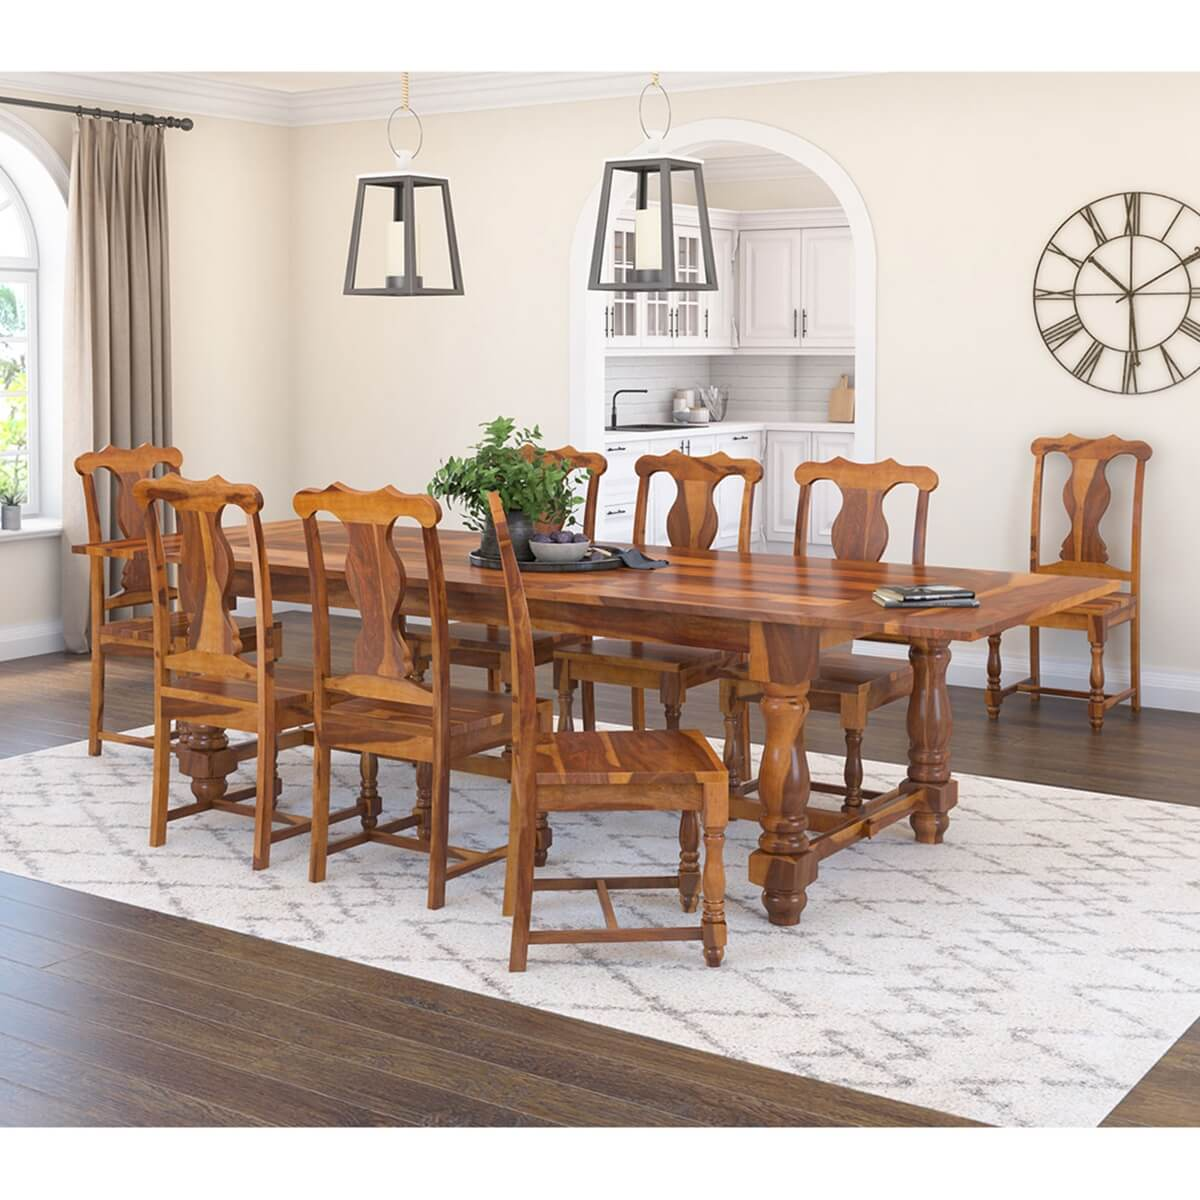 Rustic solid wood dining table chair set furniture w Rustic wood dining table